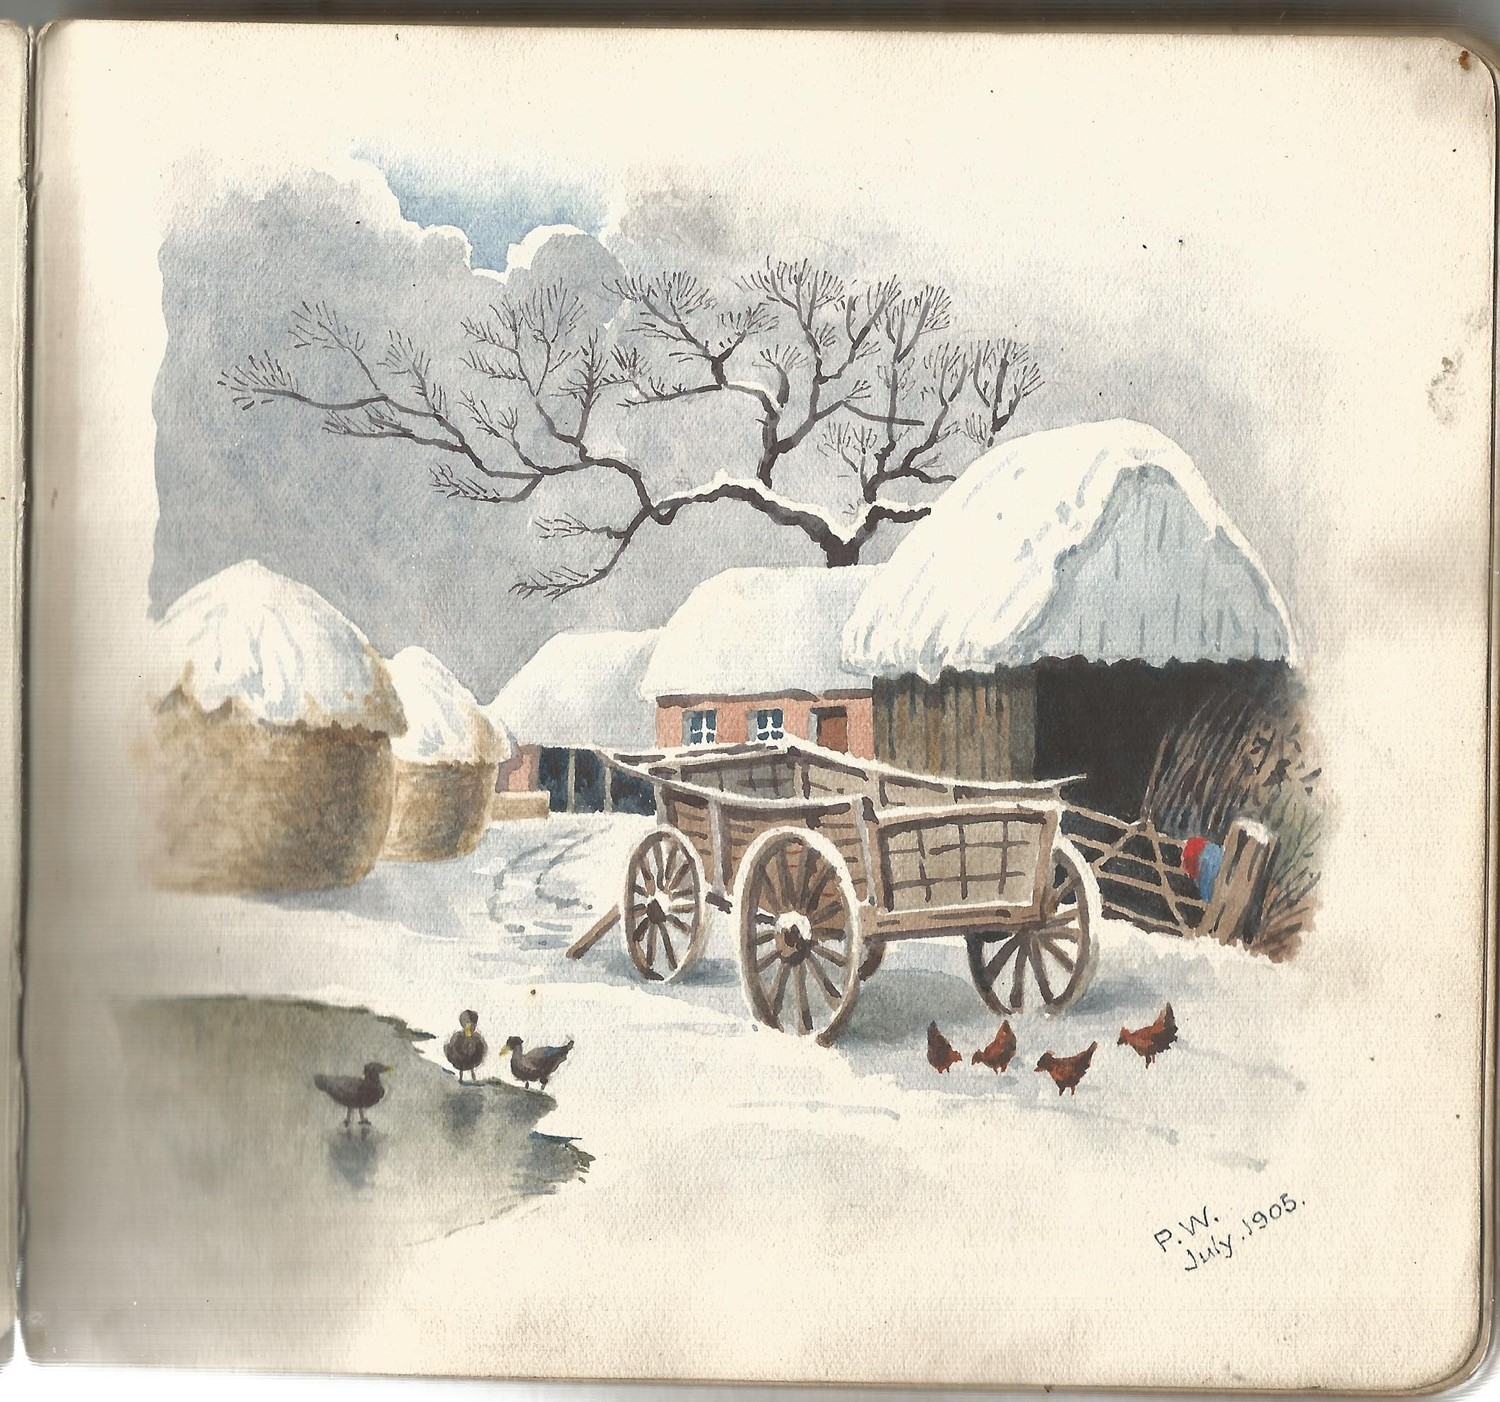 Autograph book collection includes over 20 vintage sketches, doddles and postcards may yield good - Image 3 of 4